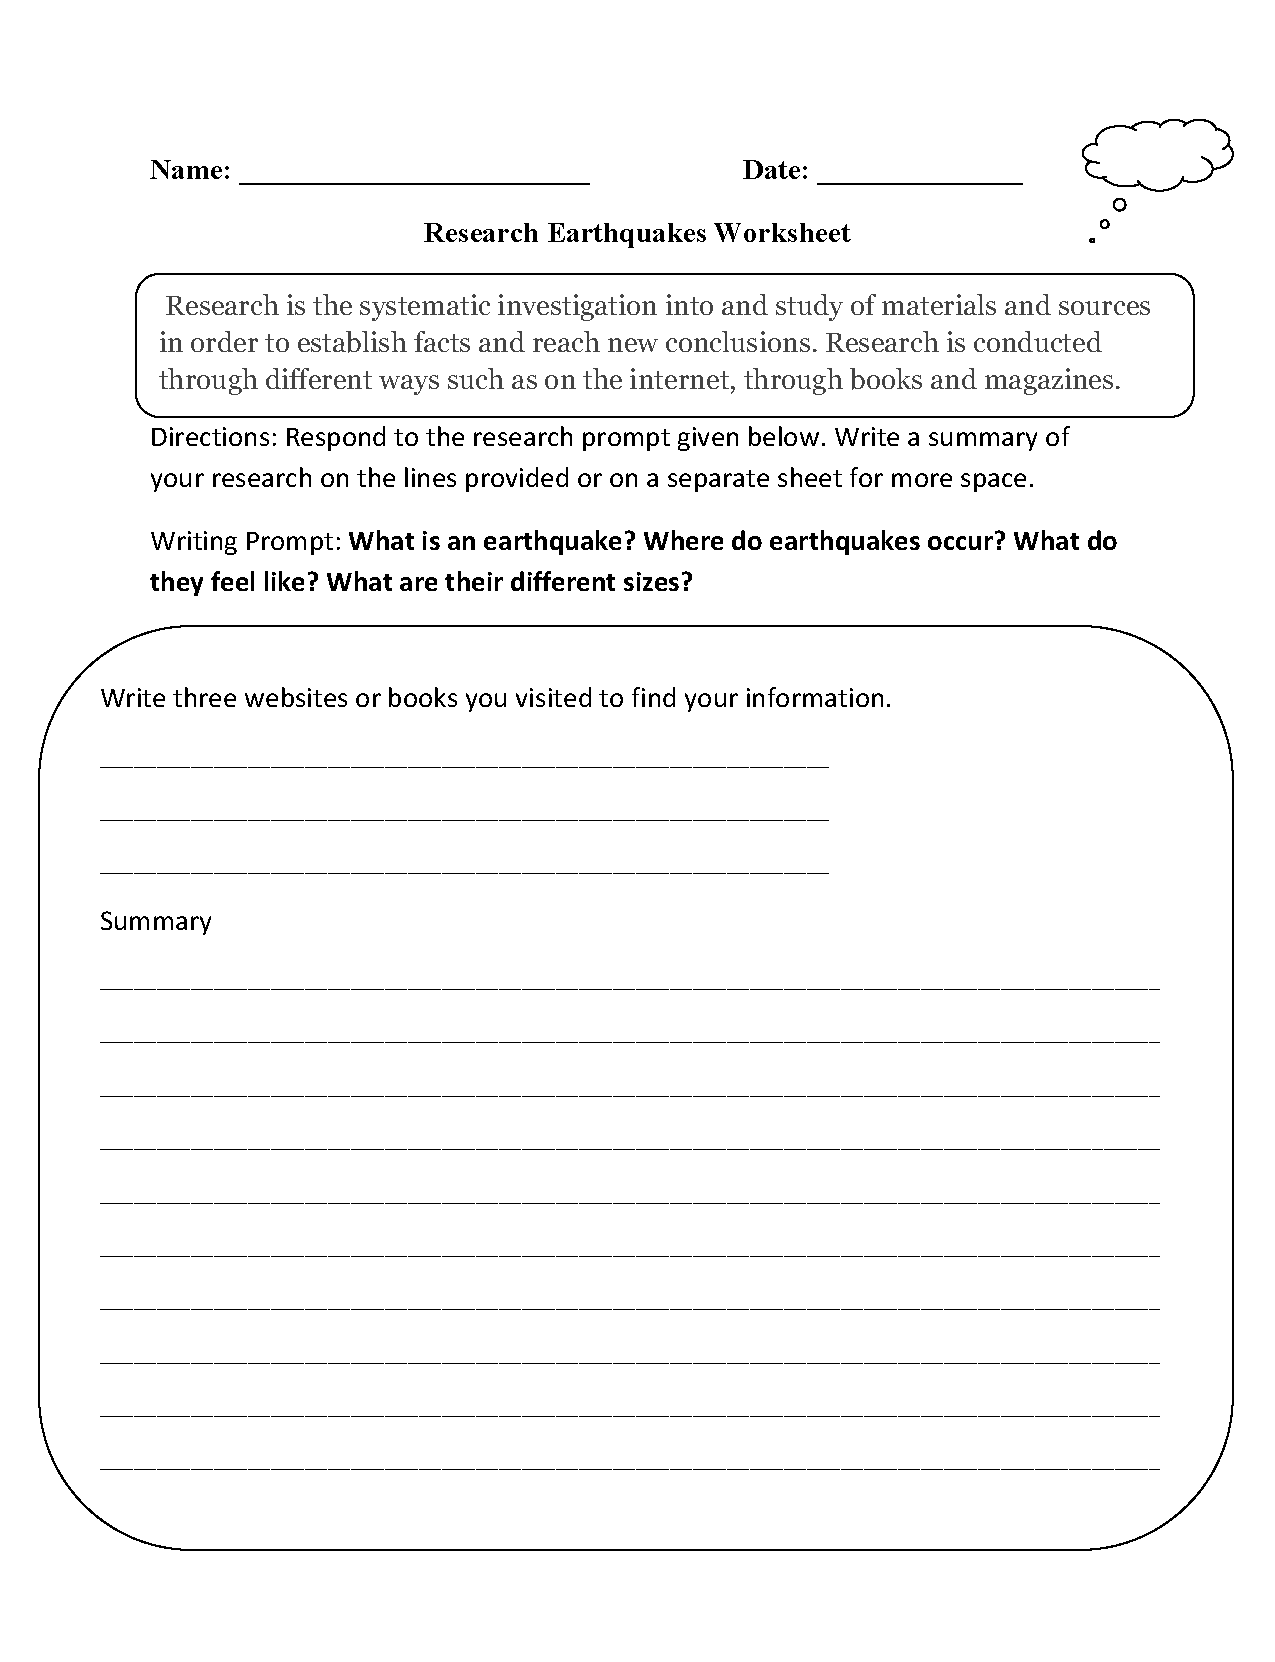 worksheet Earthquakes Worksheet research worksheets earthquakes worksheet worksheet